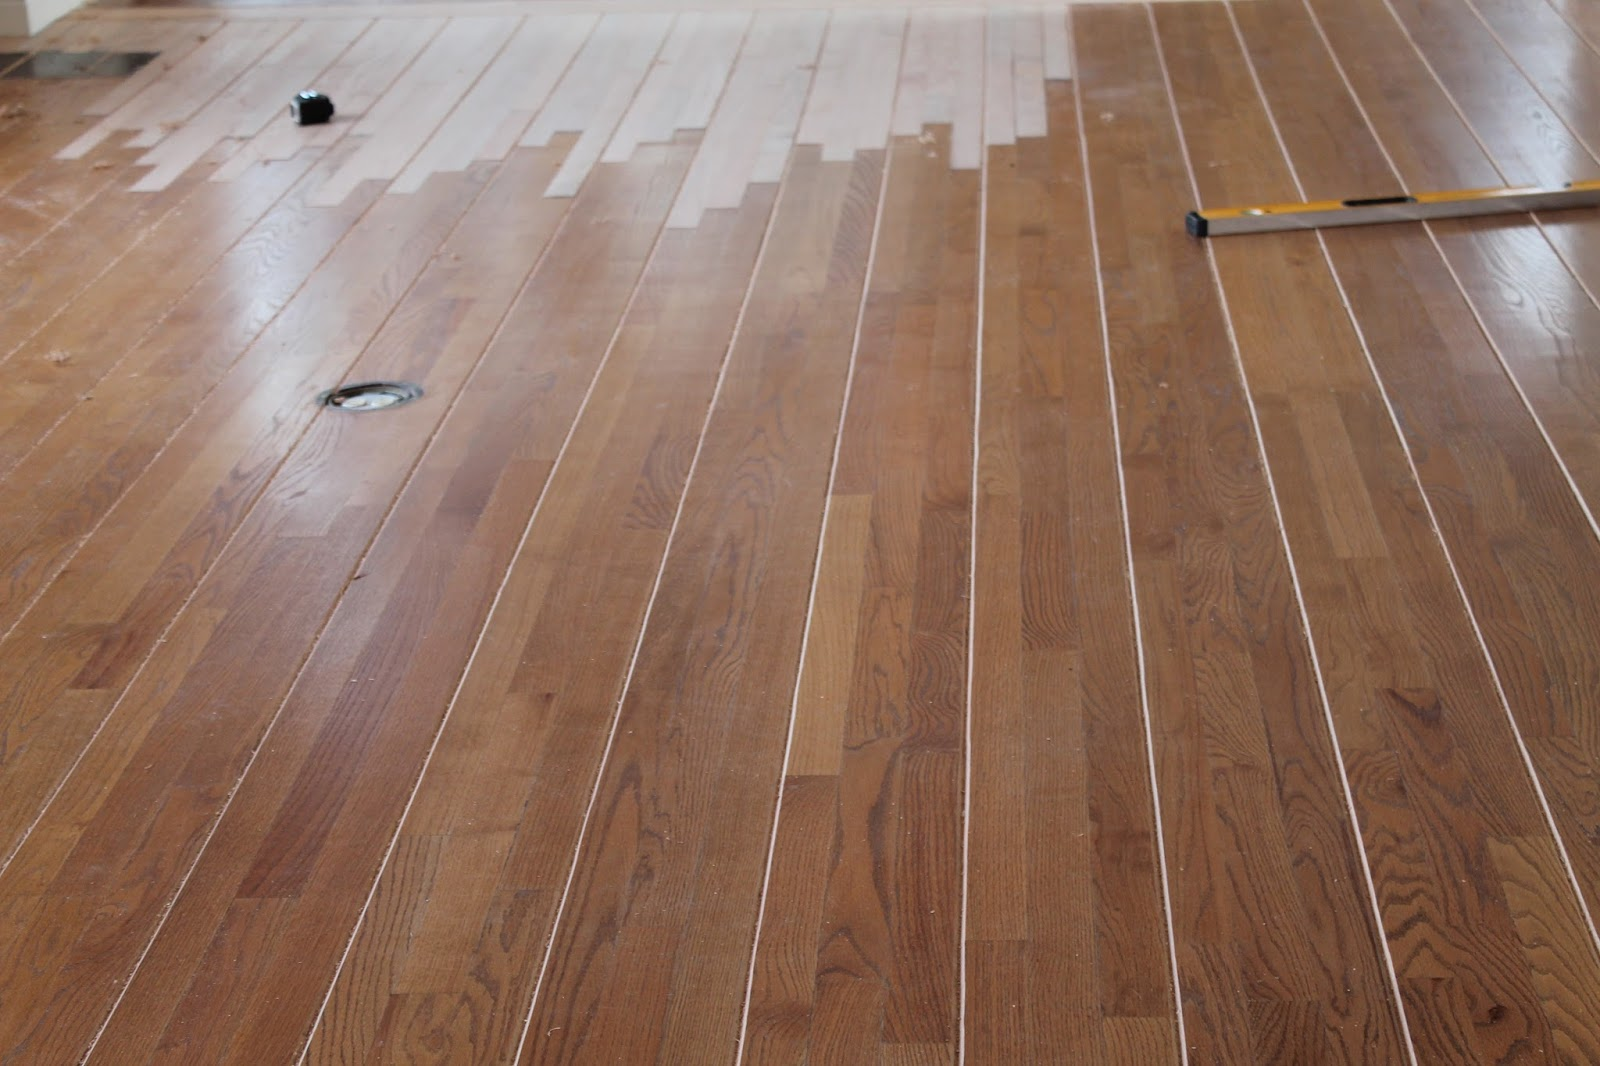 Wichita wood floor specialists how to get a new floor for Wichita wood flooring